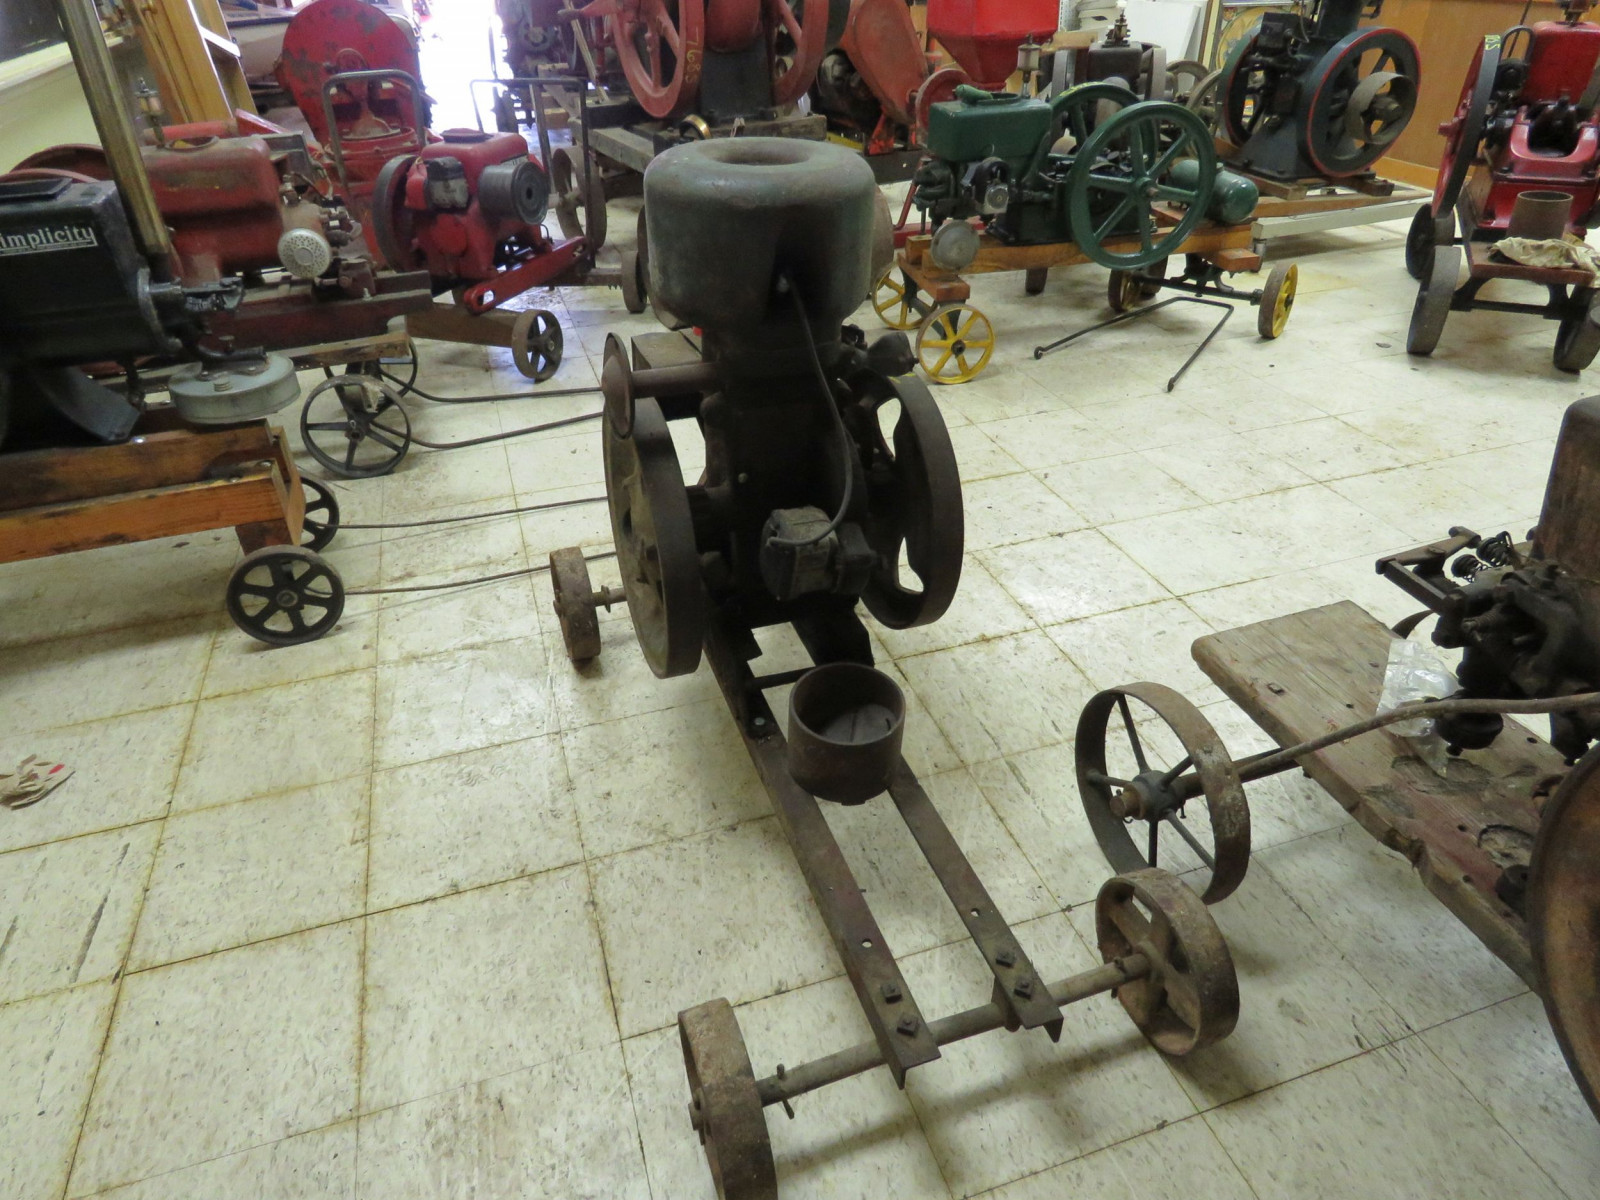 Fairbanks Morse Eclipse 4 hp Stationary Gas engine - Image 4